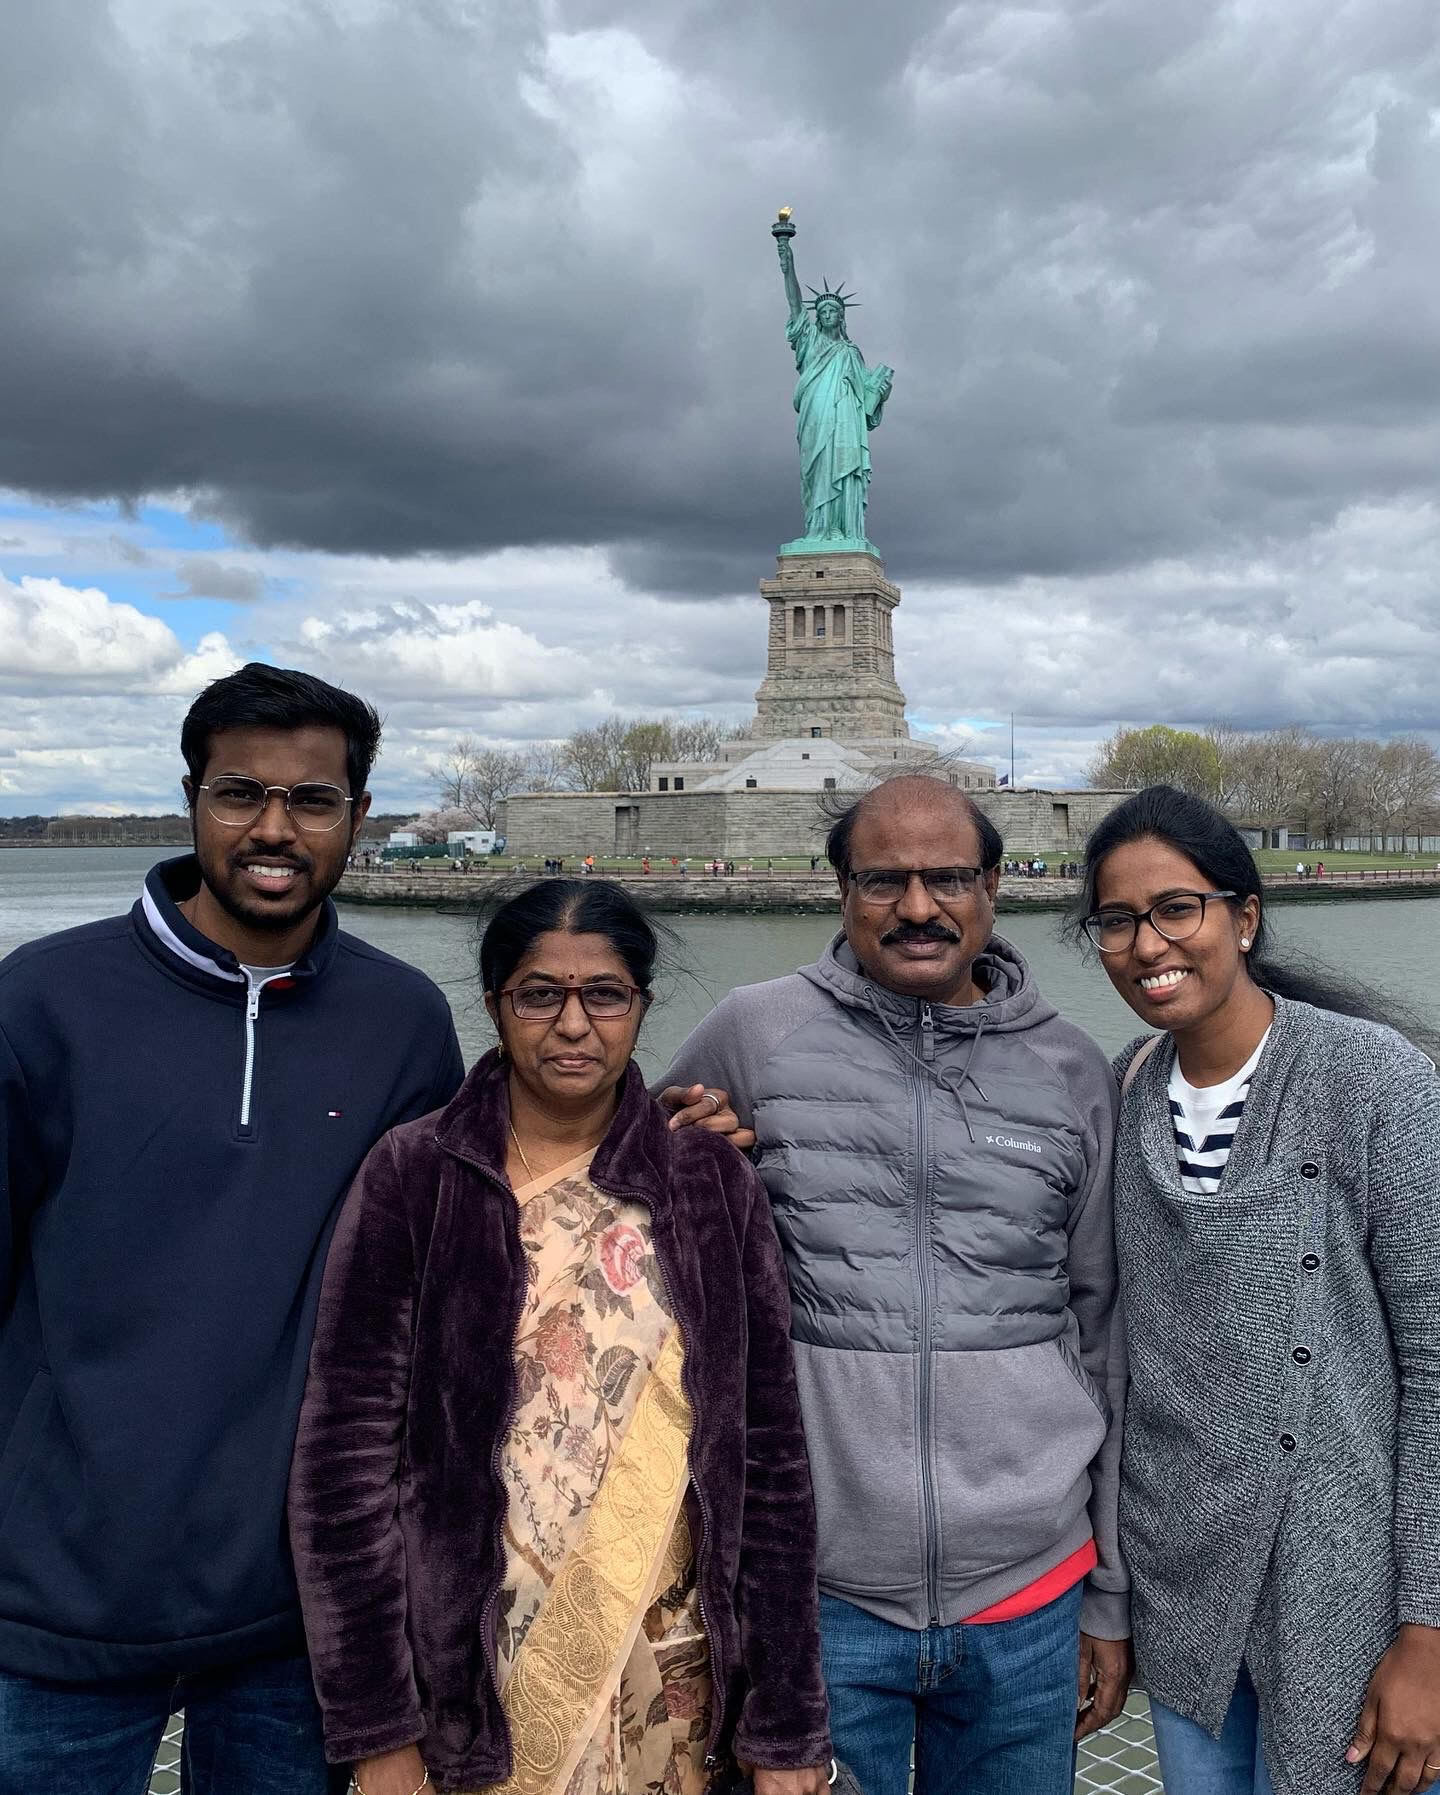 Family in front of Statue of Liberty